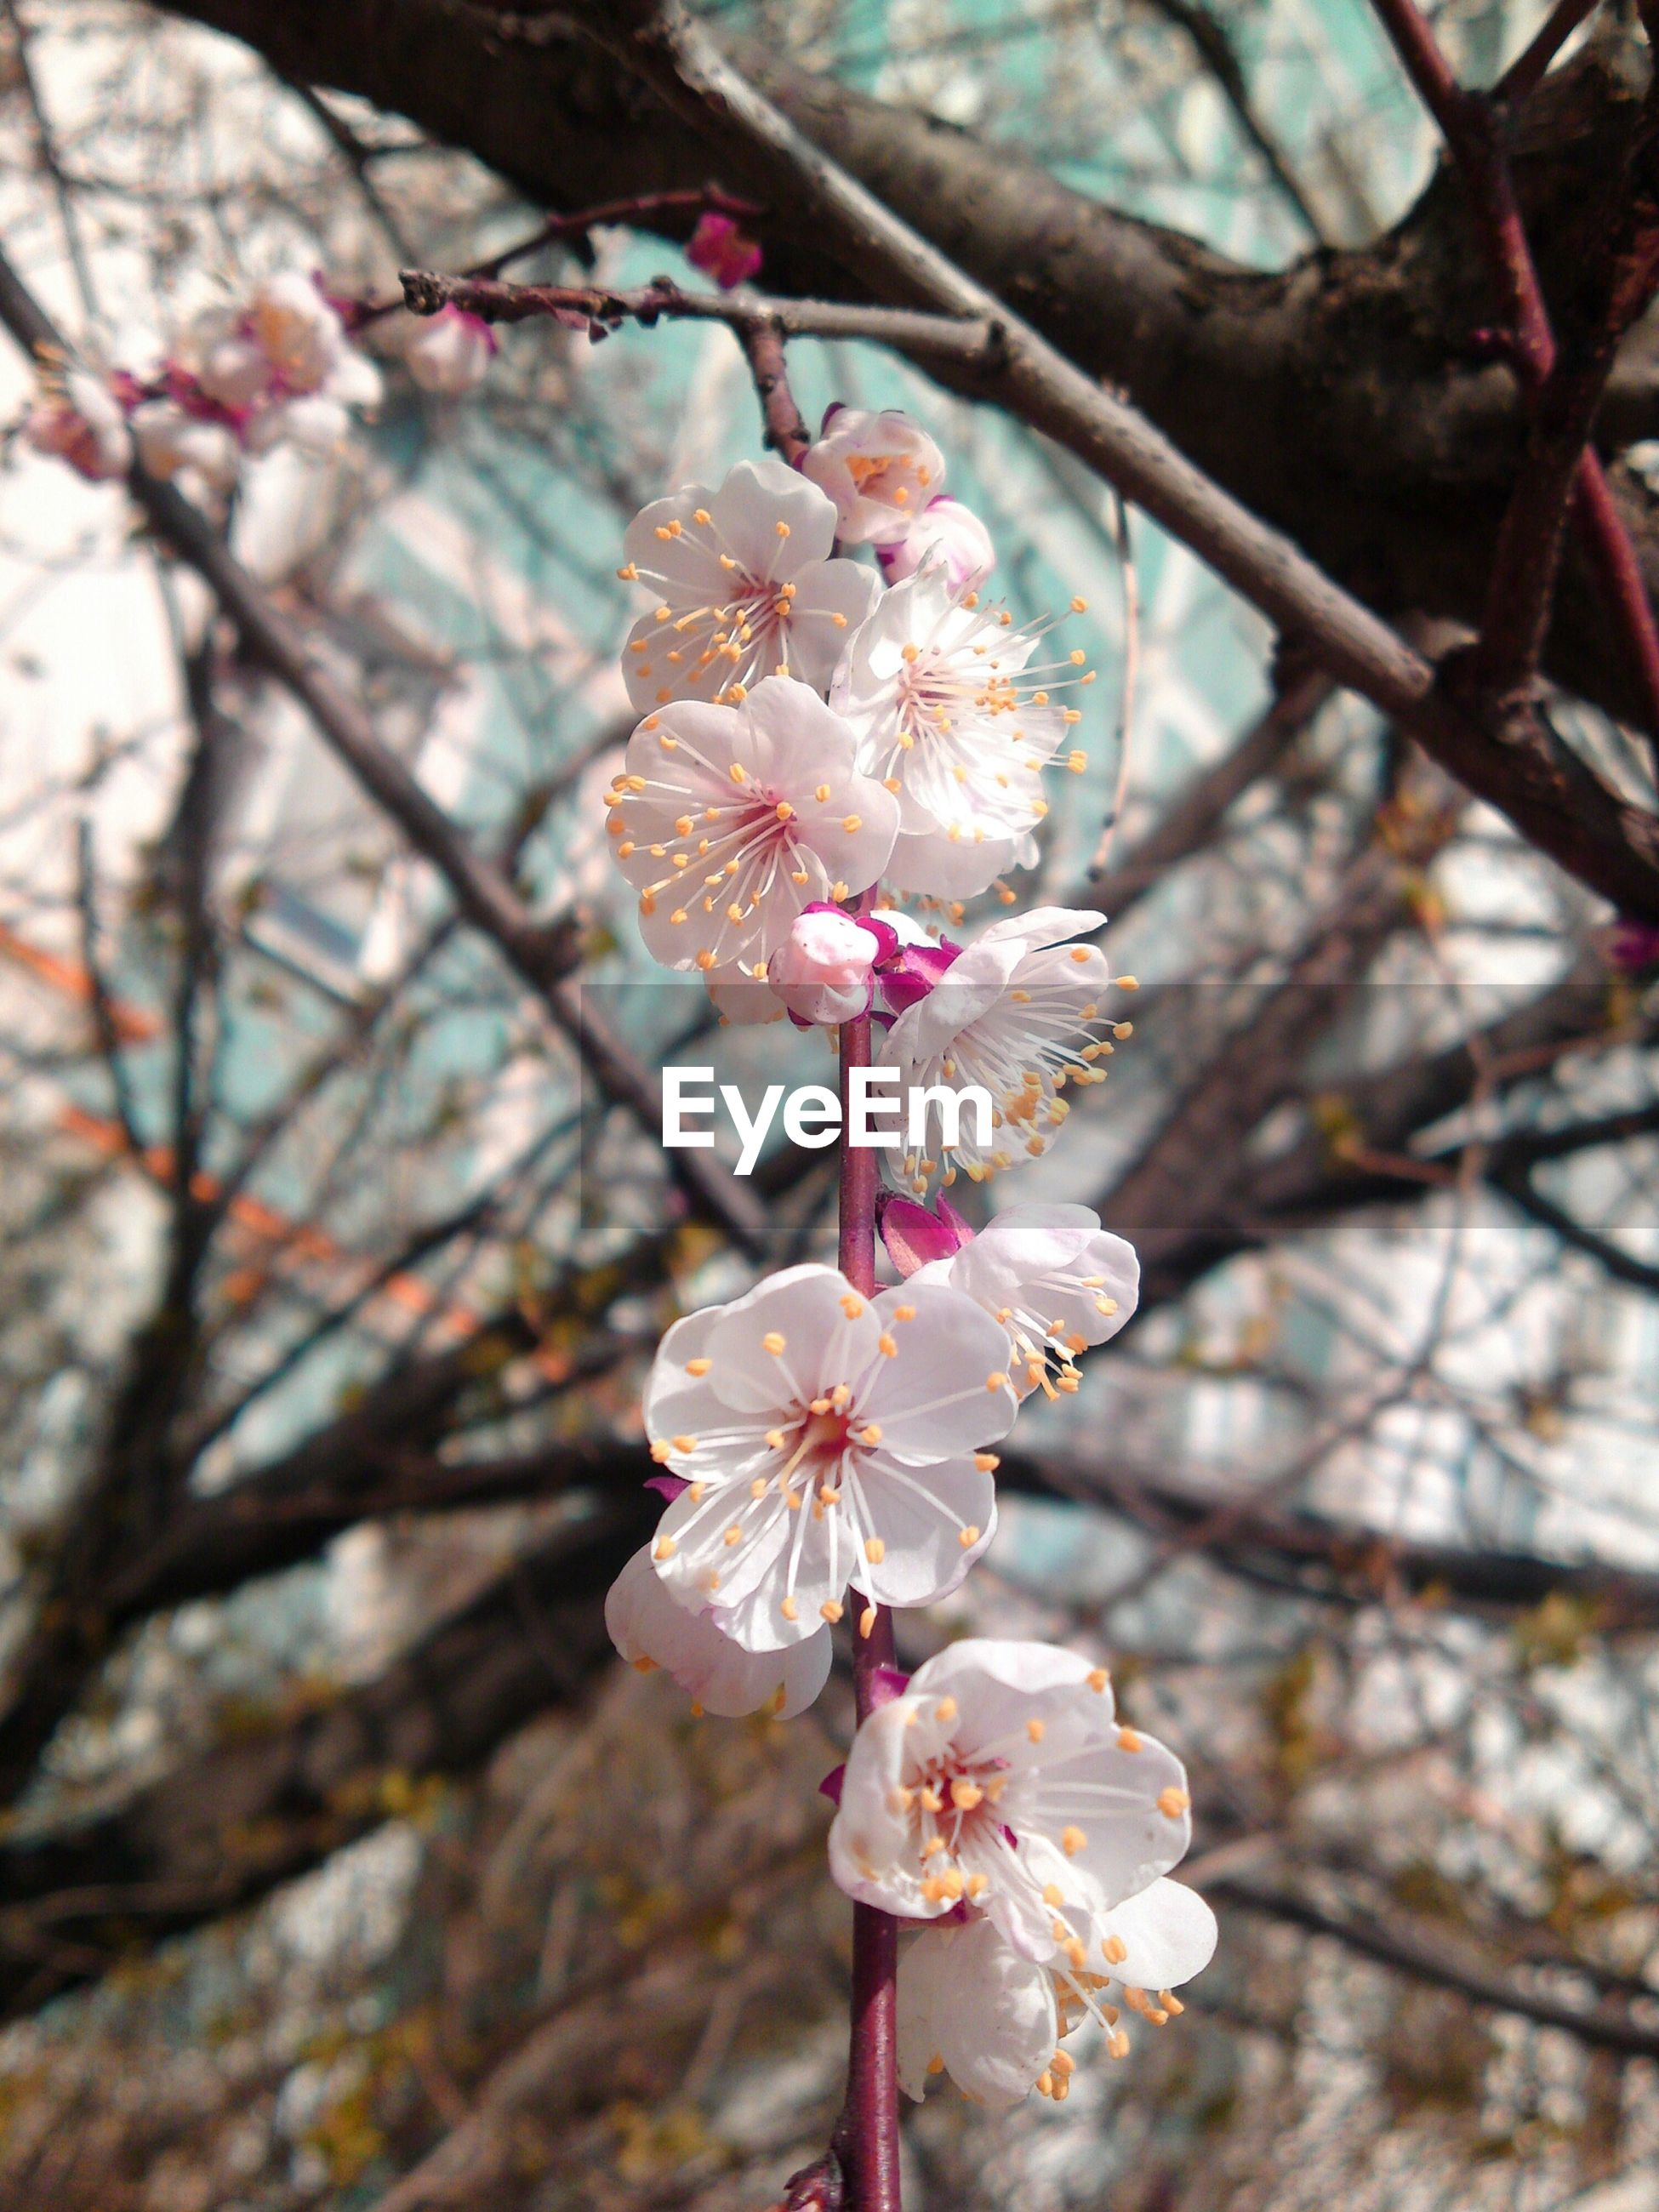 flower, branch, freshness, cherry blossom, tree, fragility, cherry tree, growth, blossom, beauty in nature, apple tree, petal, fruit tree, focus on foreground, nature, twig, orchard, apple blossom, springtime, close-up